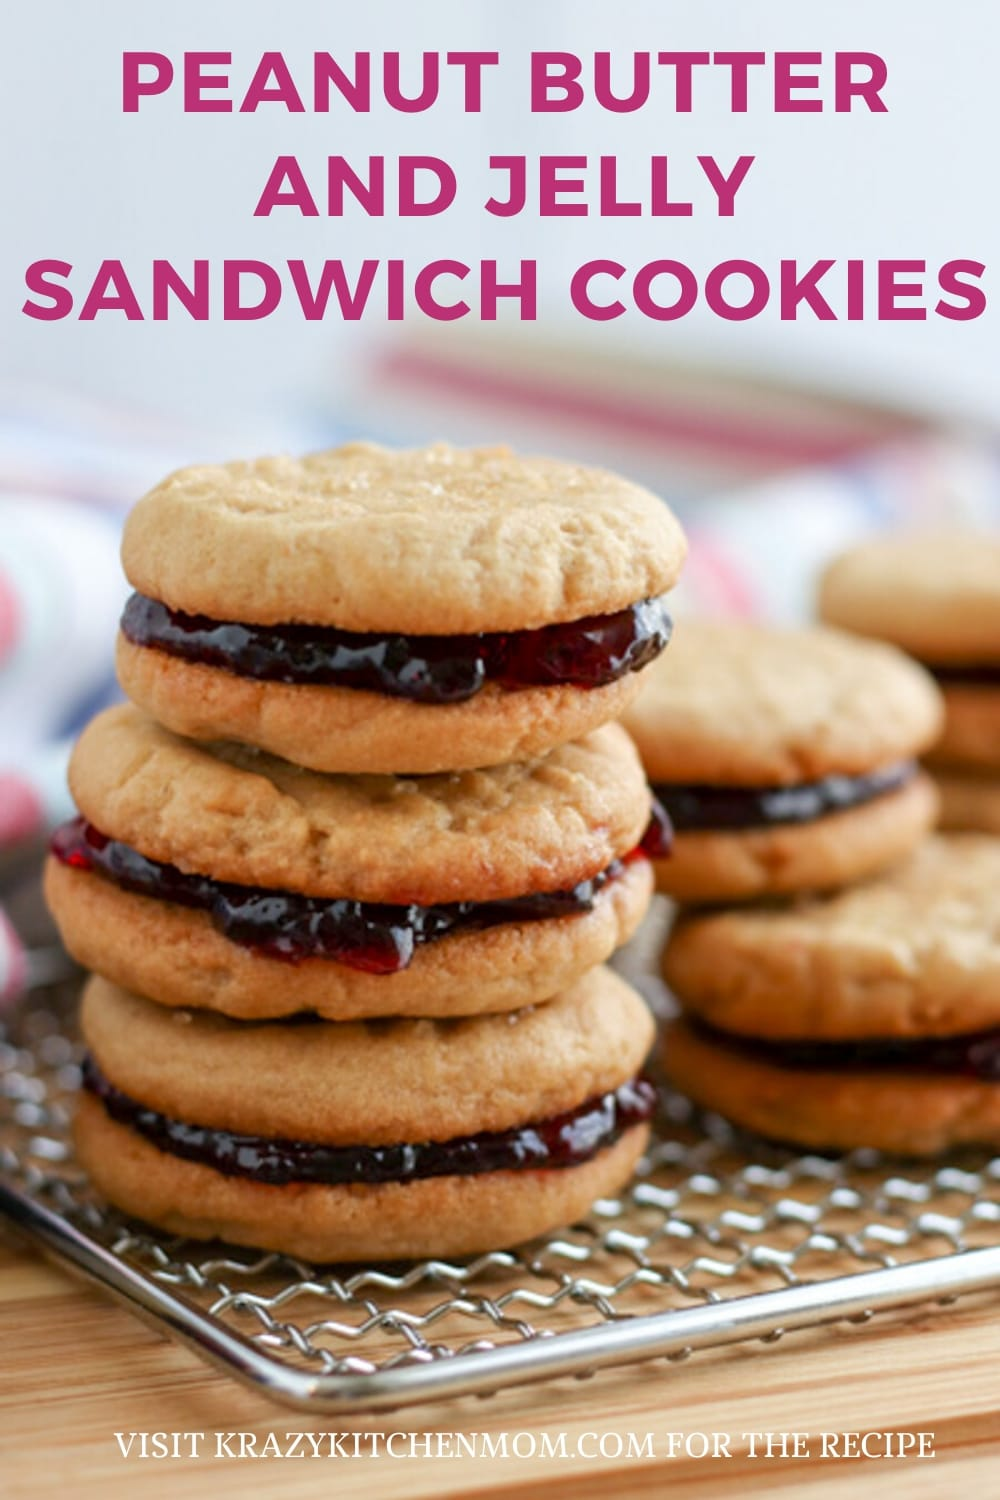 Two peanut butter cookies sandwiched together with grape jelly make the best Peanut Butter and Jelly Sandwich Cookies. via @krazykitchenmom